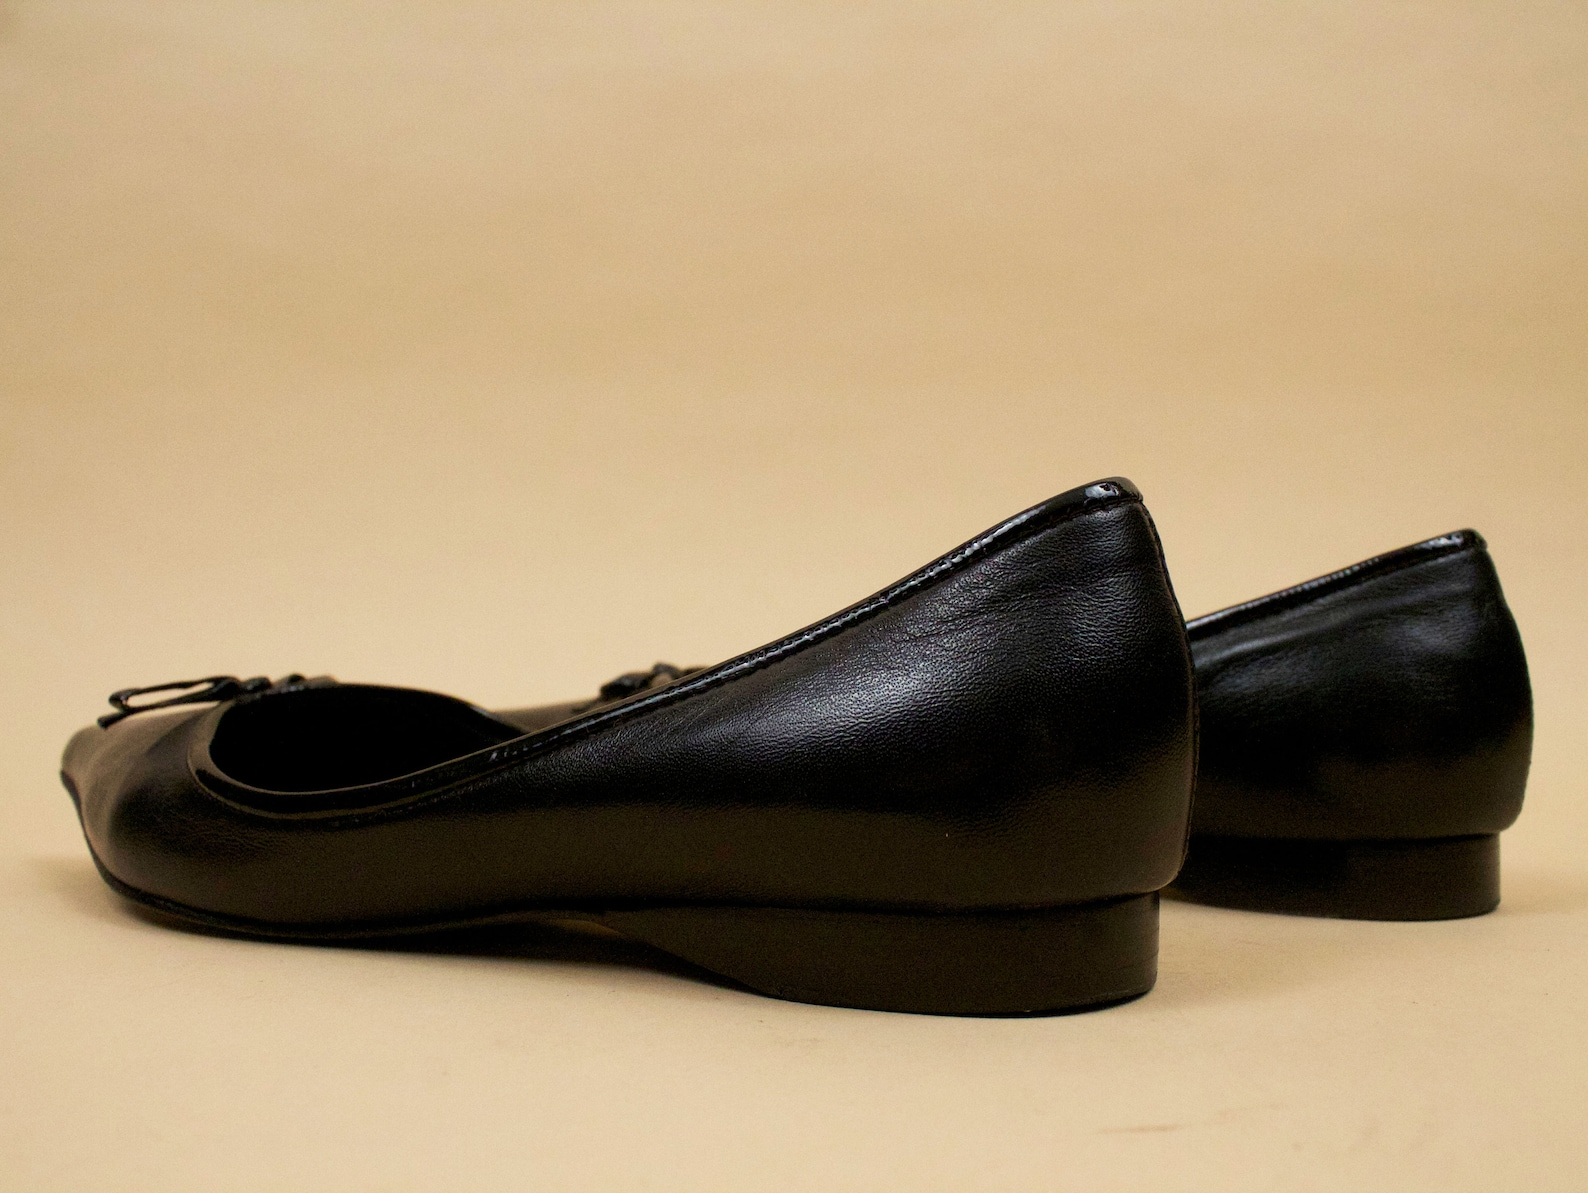 90s does 60s vtg black pointed ballet flats genuine leather with patent bow by arturo chiang / slip on pin up mod 6.5 eu 37